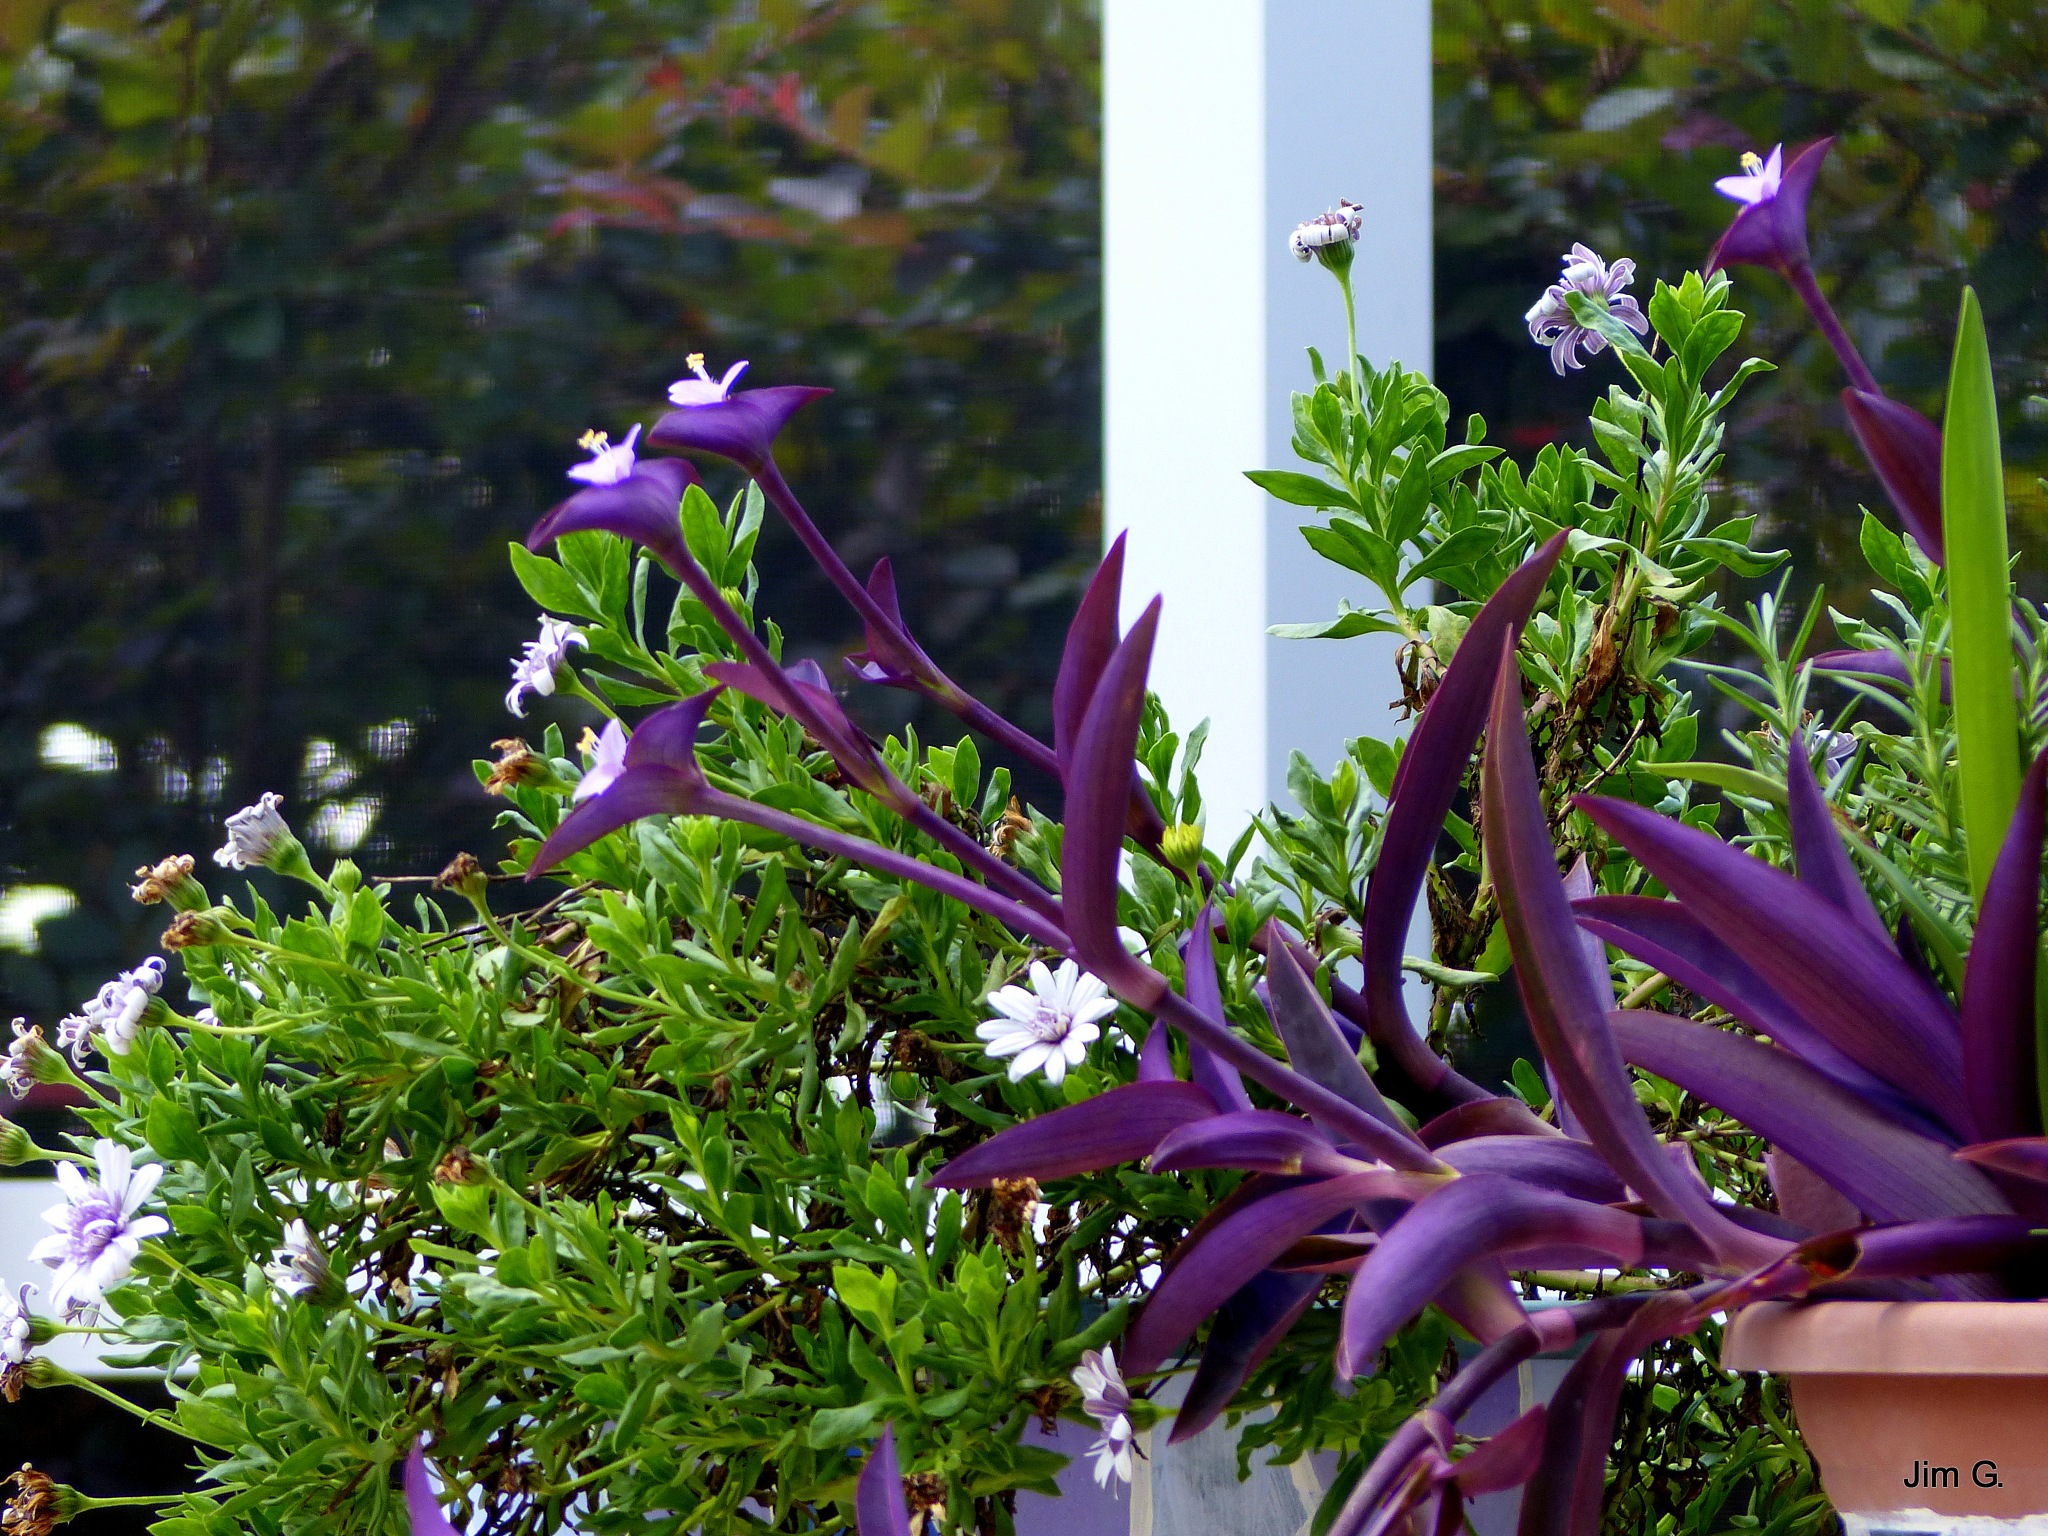 Purple plant in pot with blooms by Jim Graham